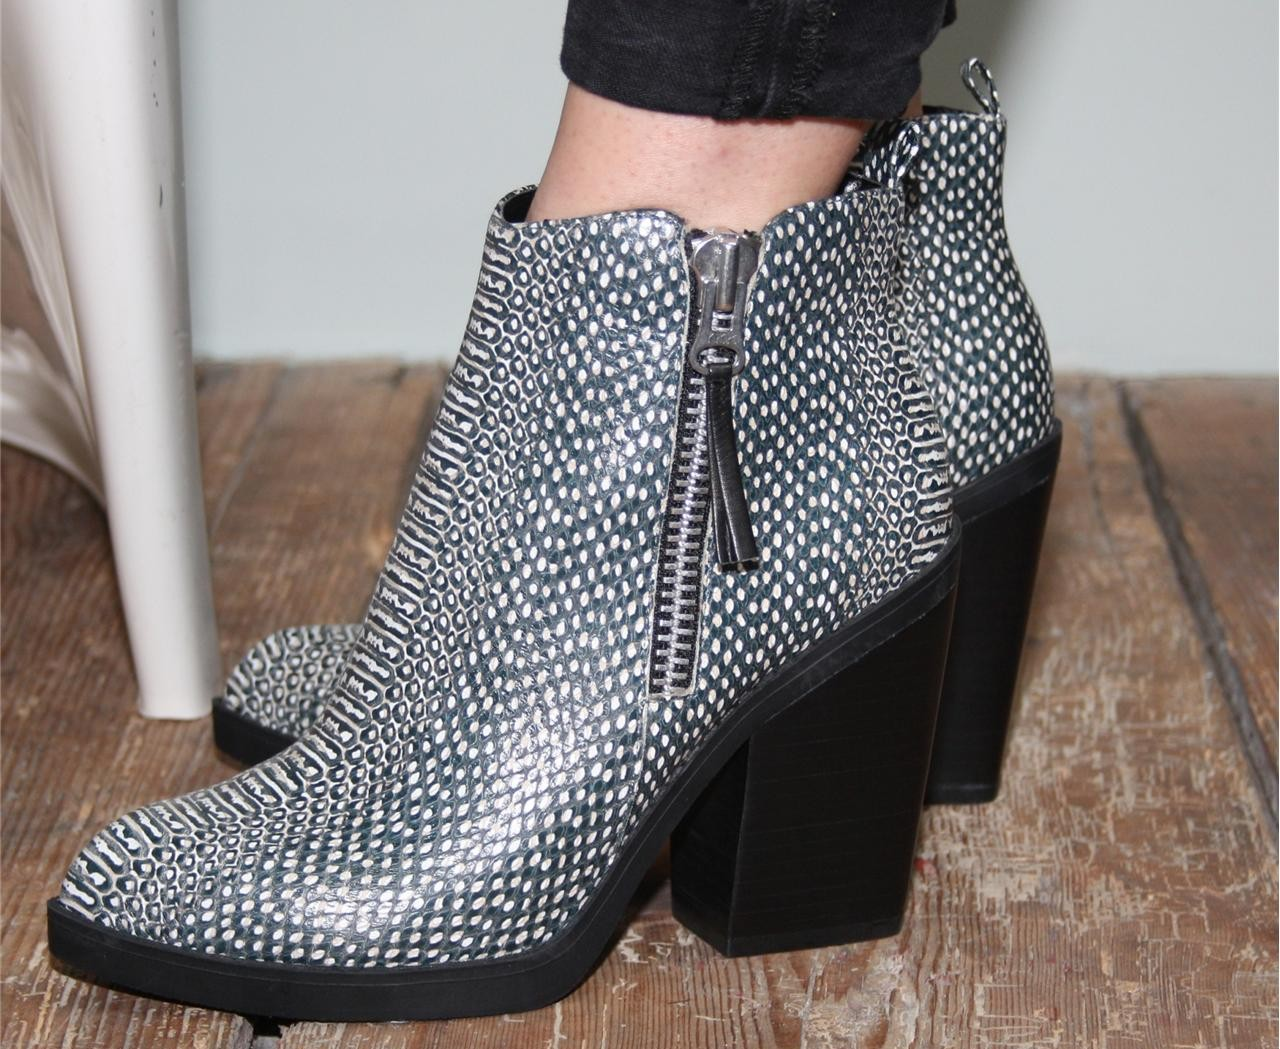 WISHLISTED: CRAZY BOOTS FOR A CRAZY GIRL